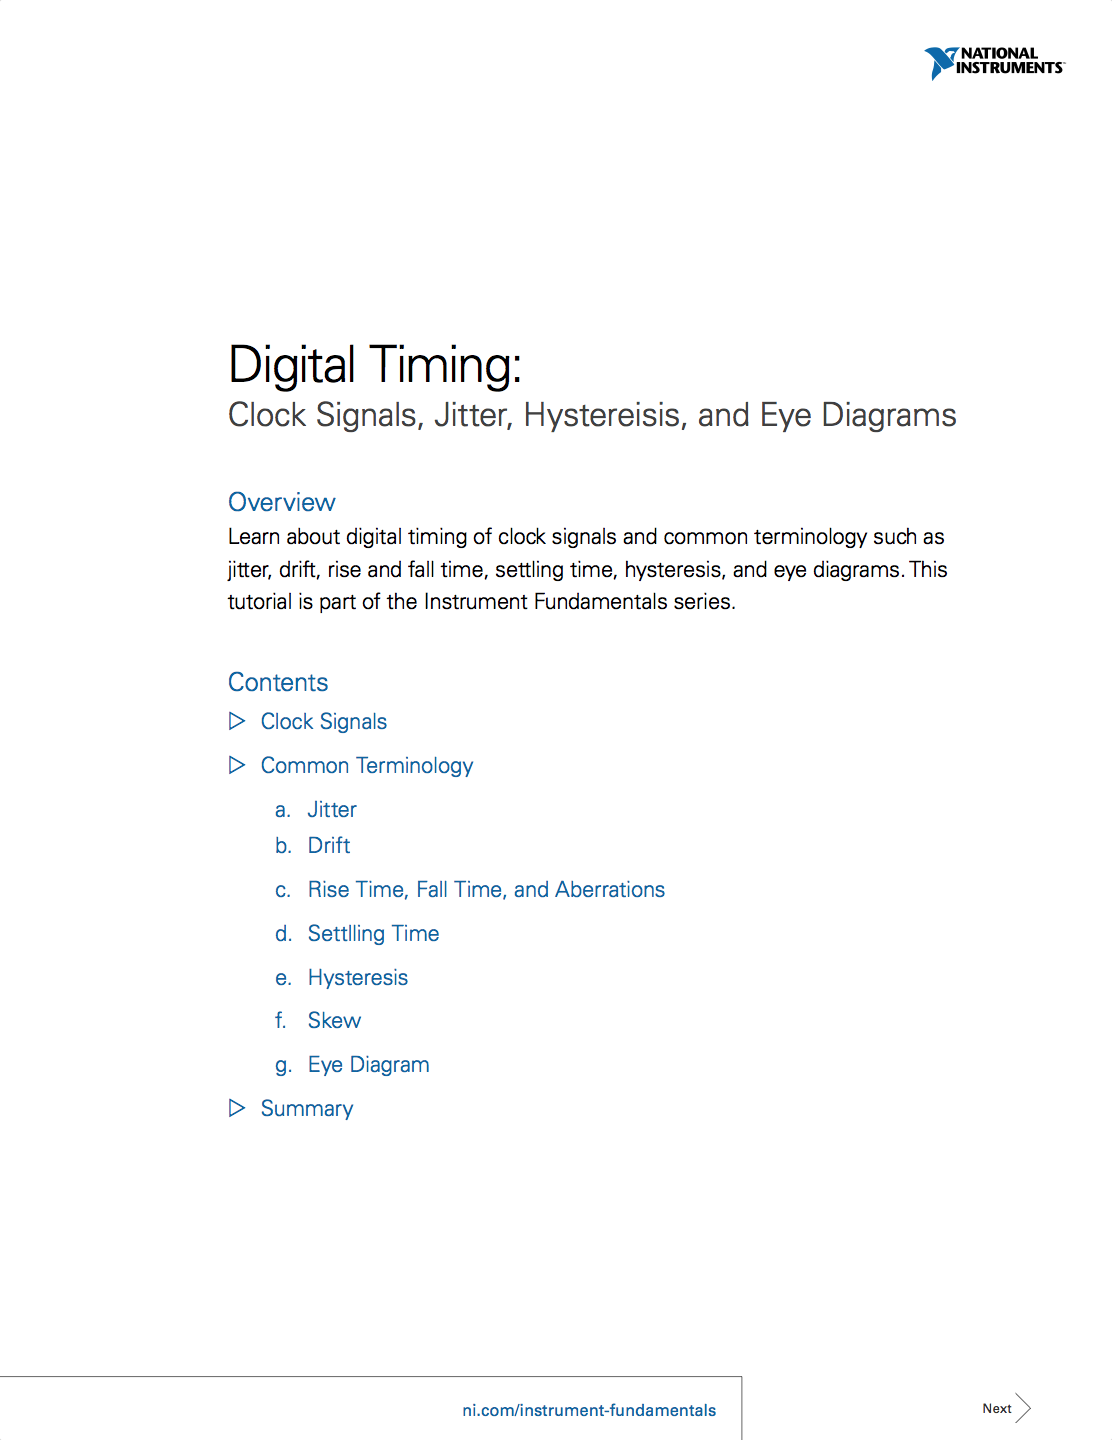 Digital Timing Clock Signals Jitter Hystereisis And Eye Diagrams Diagram